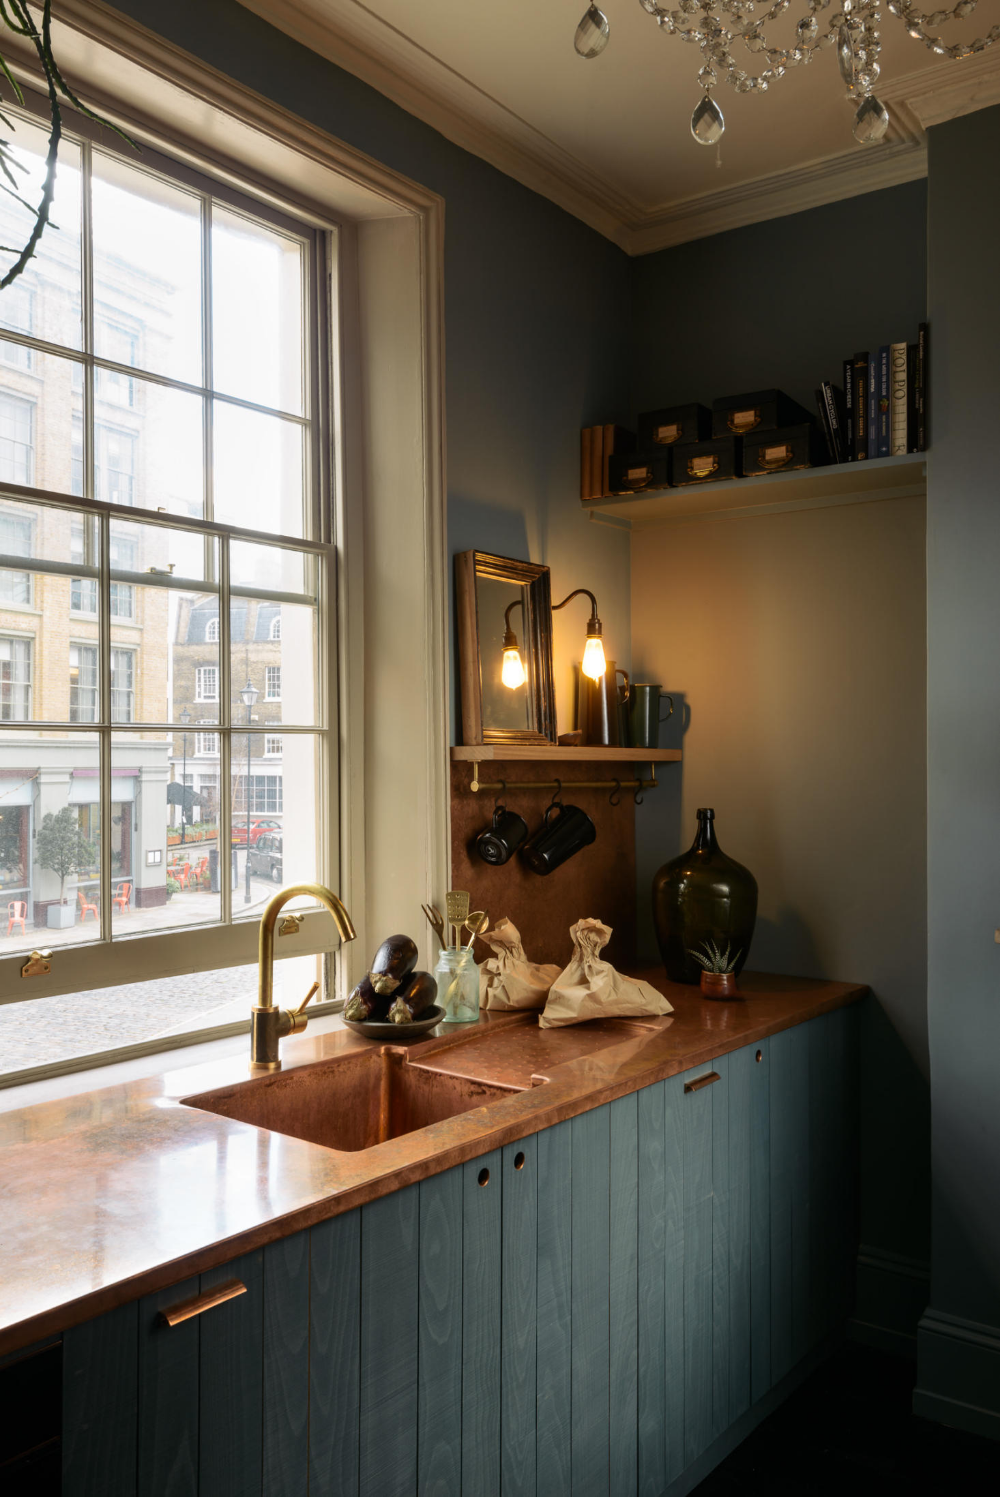 Kitchen of the Week deVol's Urban Rustic Kitchen Gets a